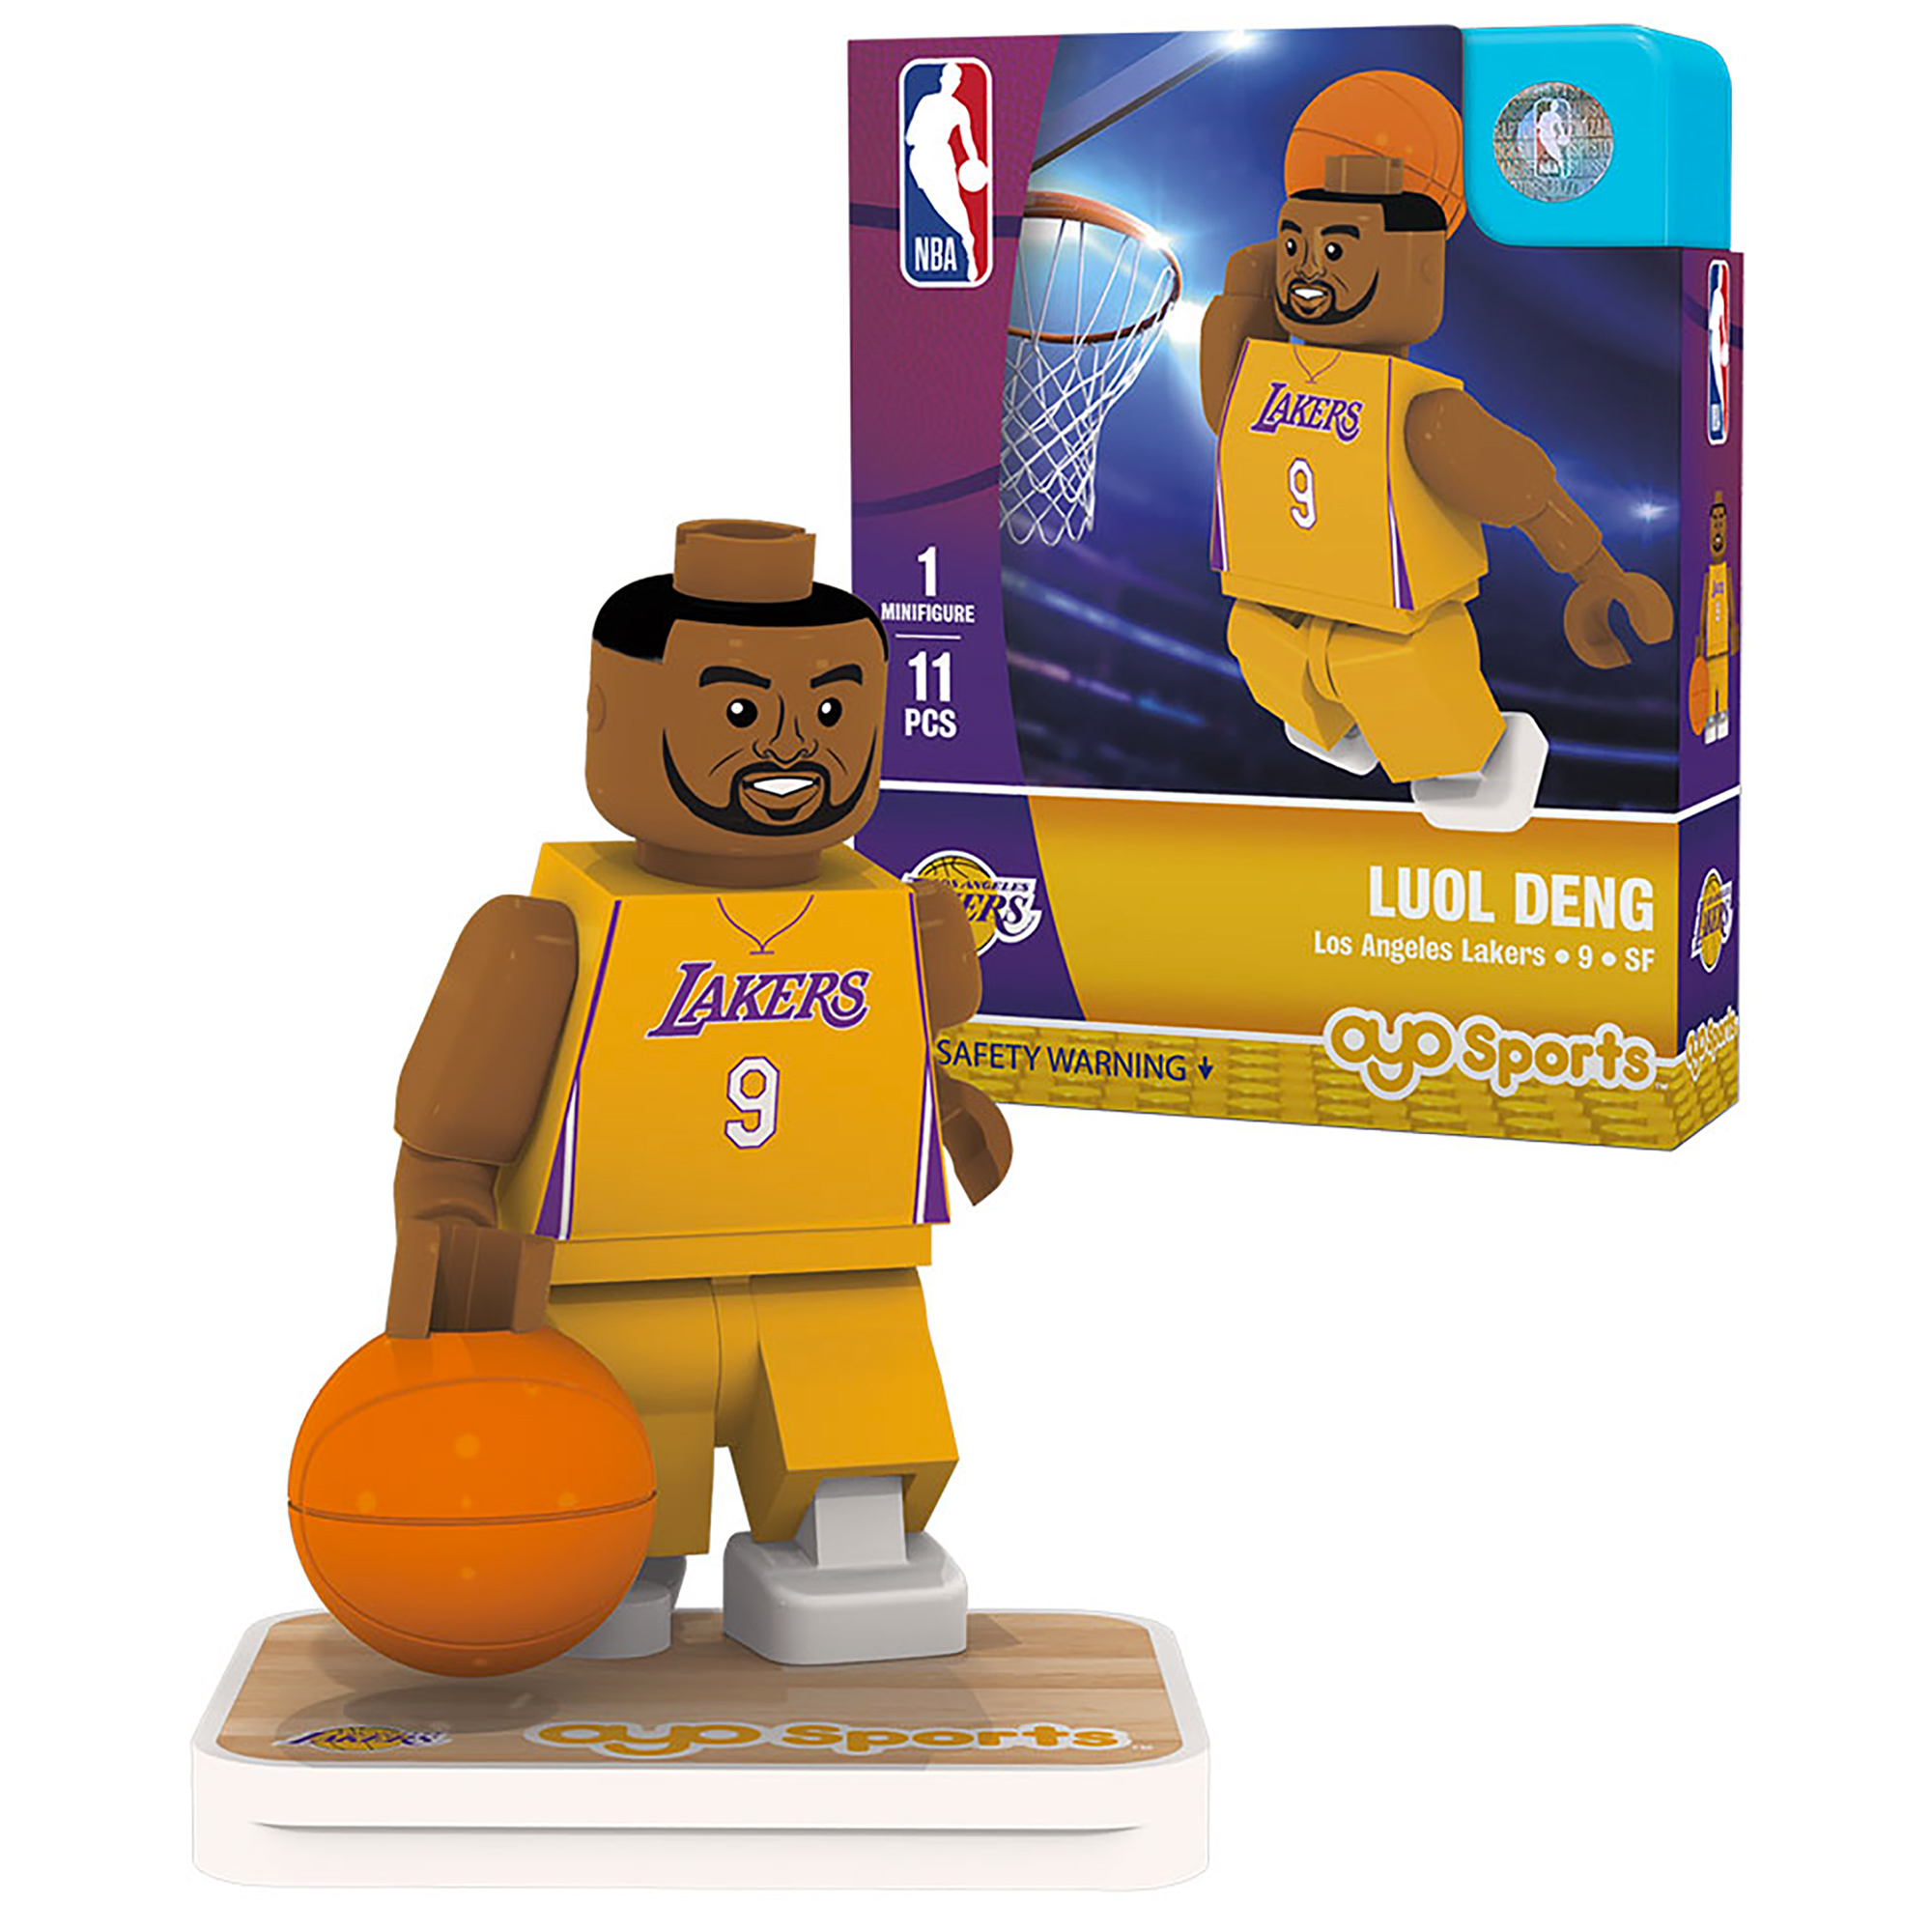 Luol Deng Los Angeles Lakers OYO Sports Player Minifigure - No Size